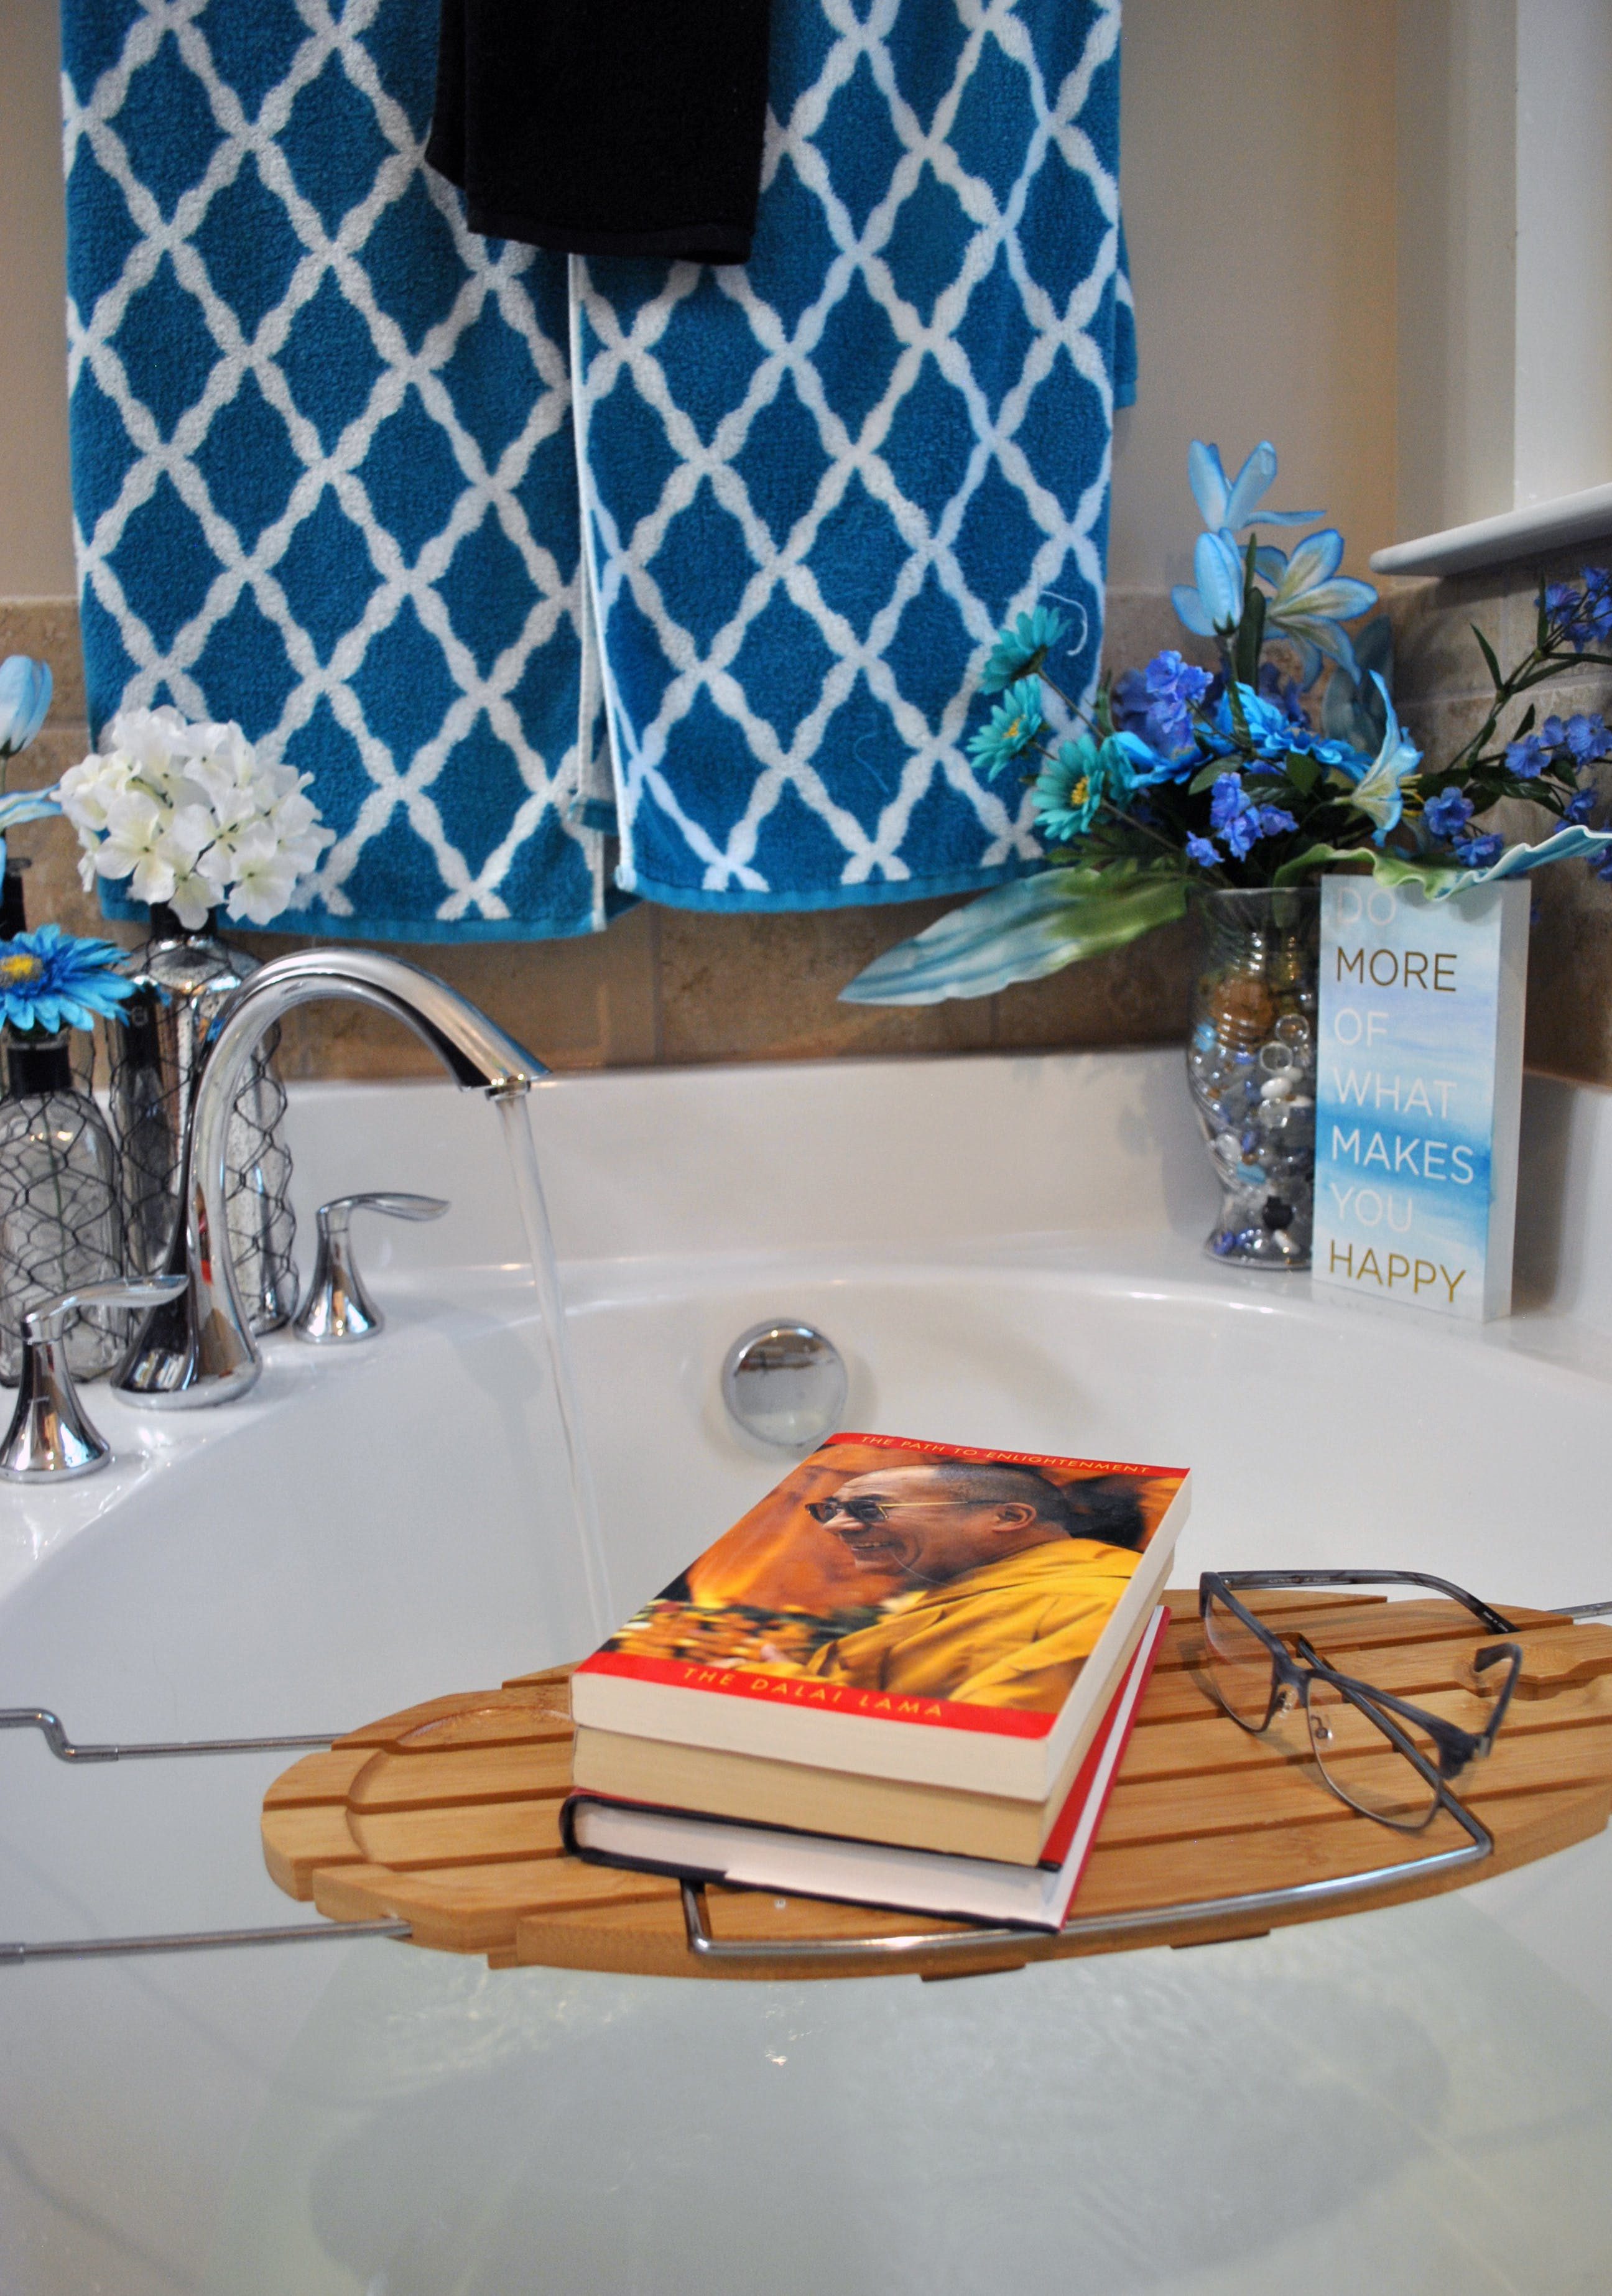 Free stock photo of books, glasses, quote, bath